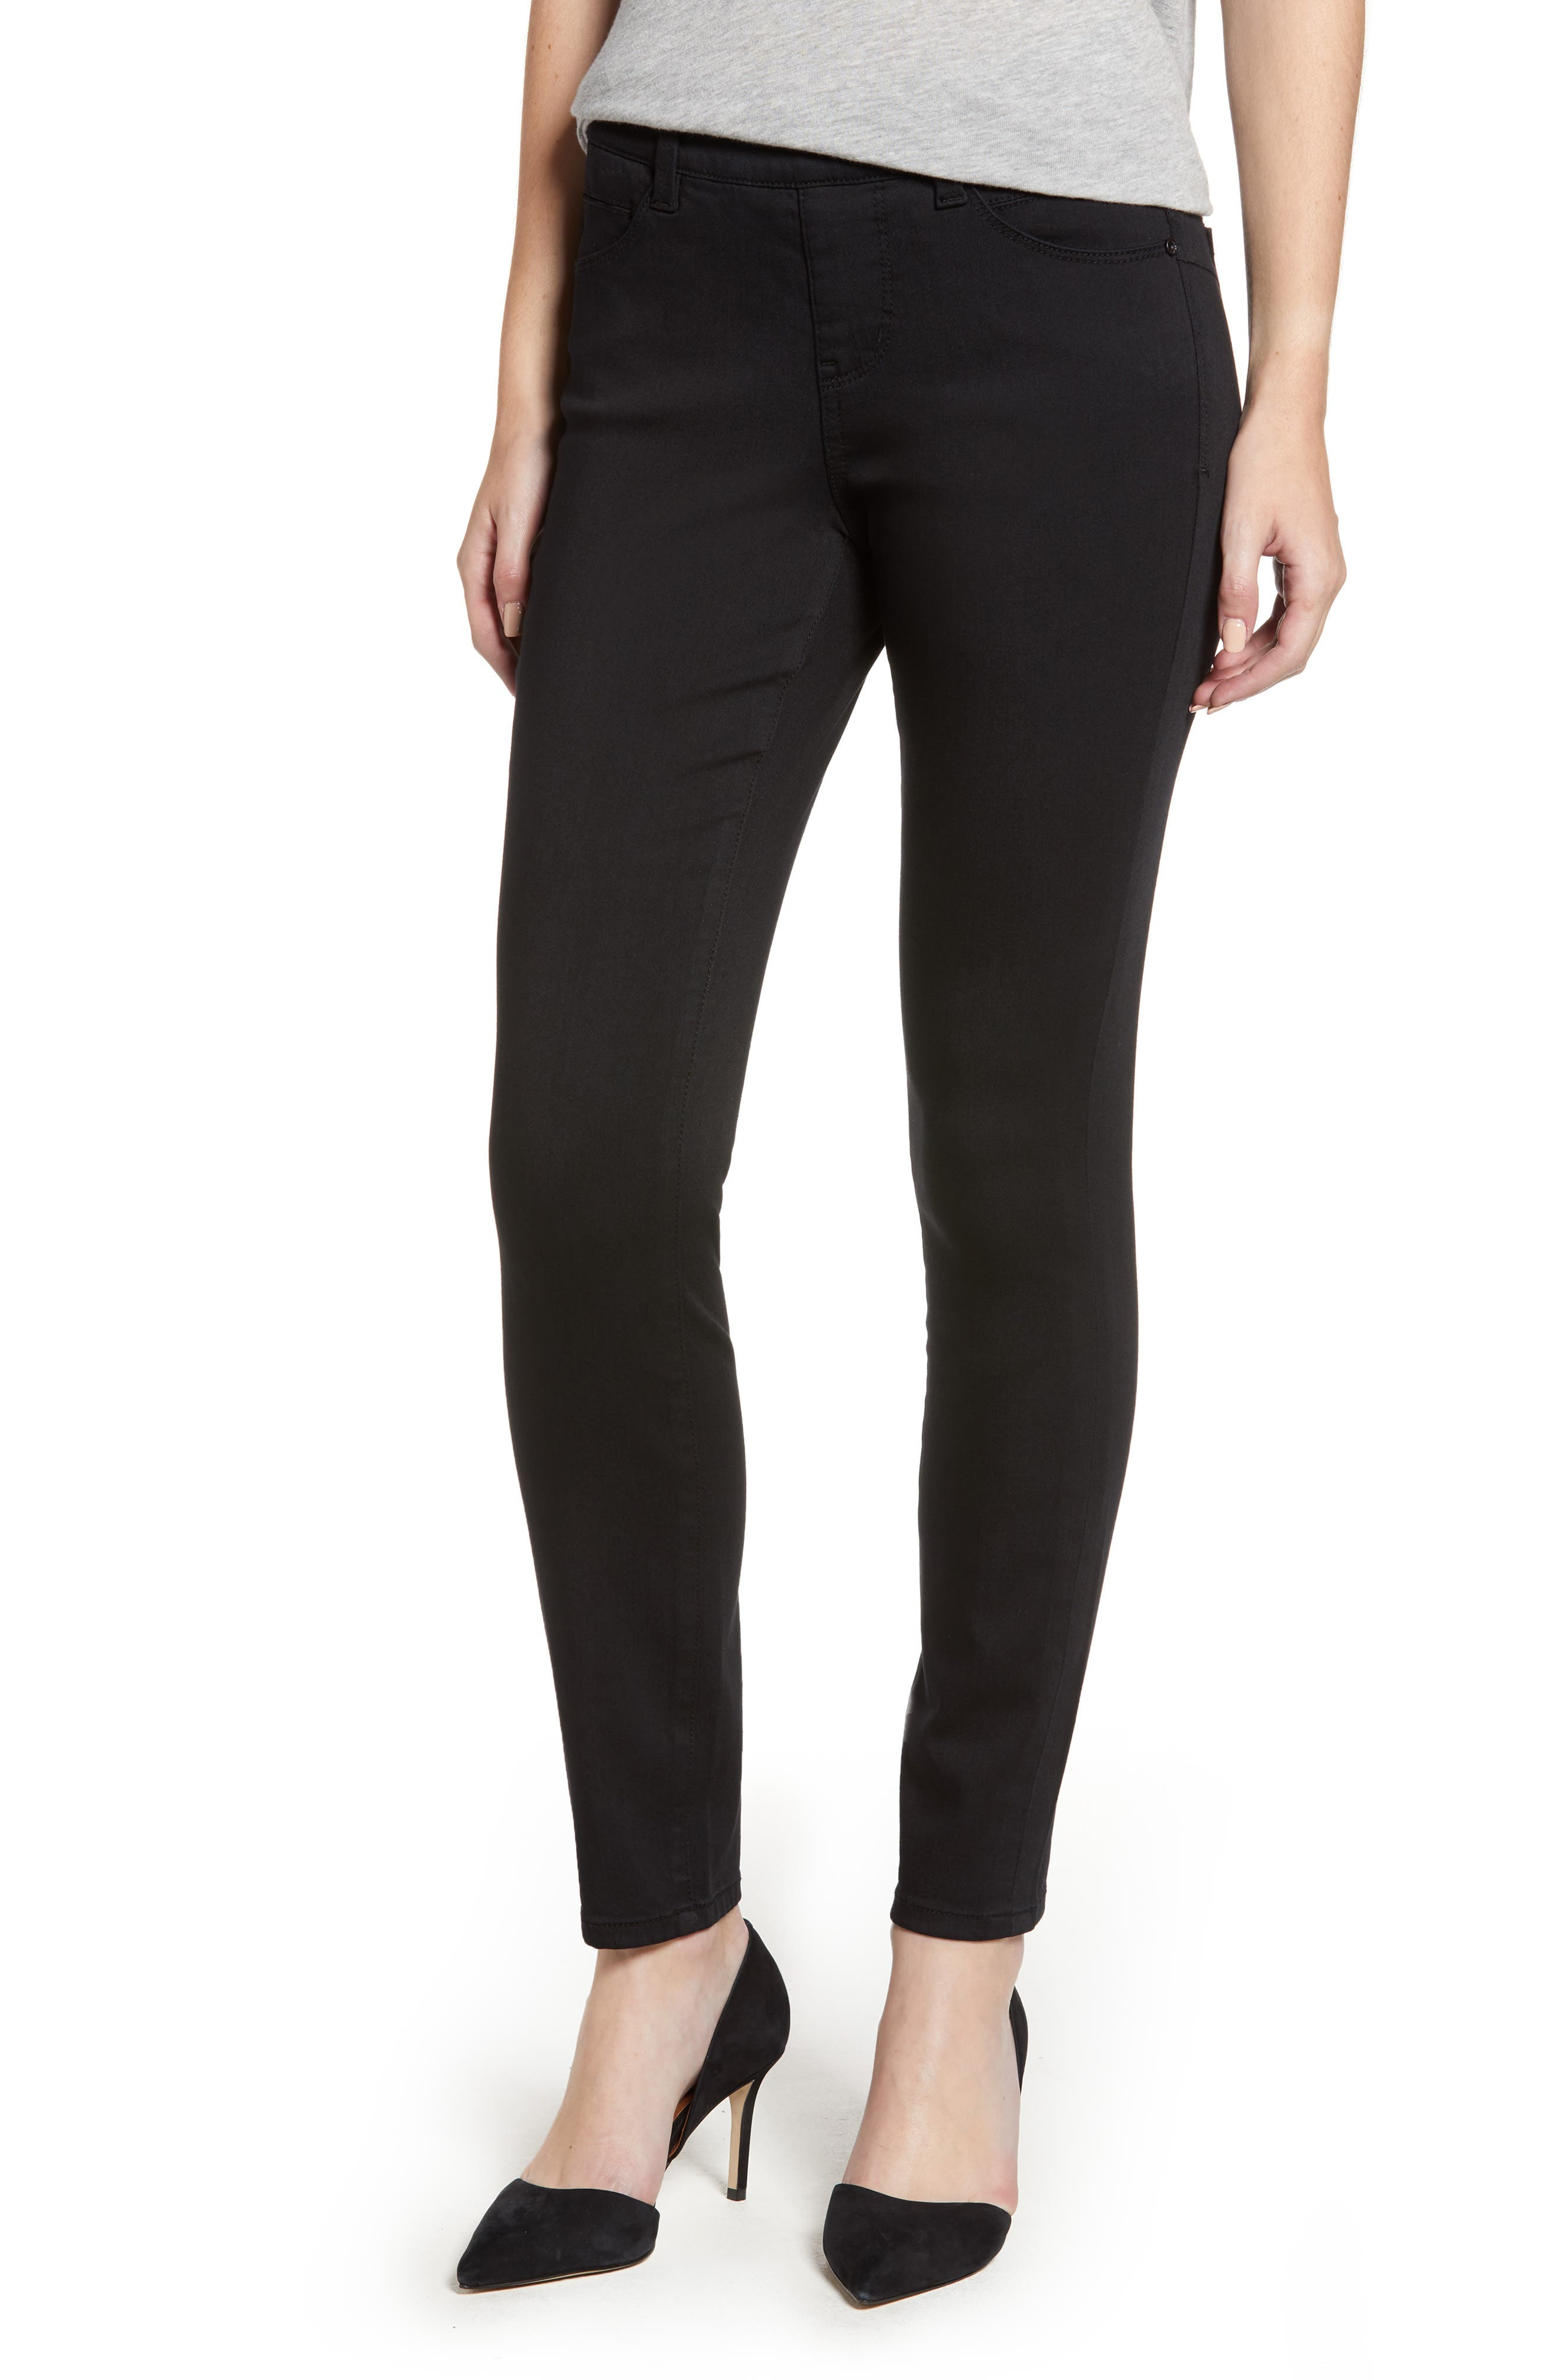 Petite Women's Jag Jeans Bryn Pull-On Jeans